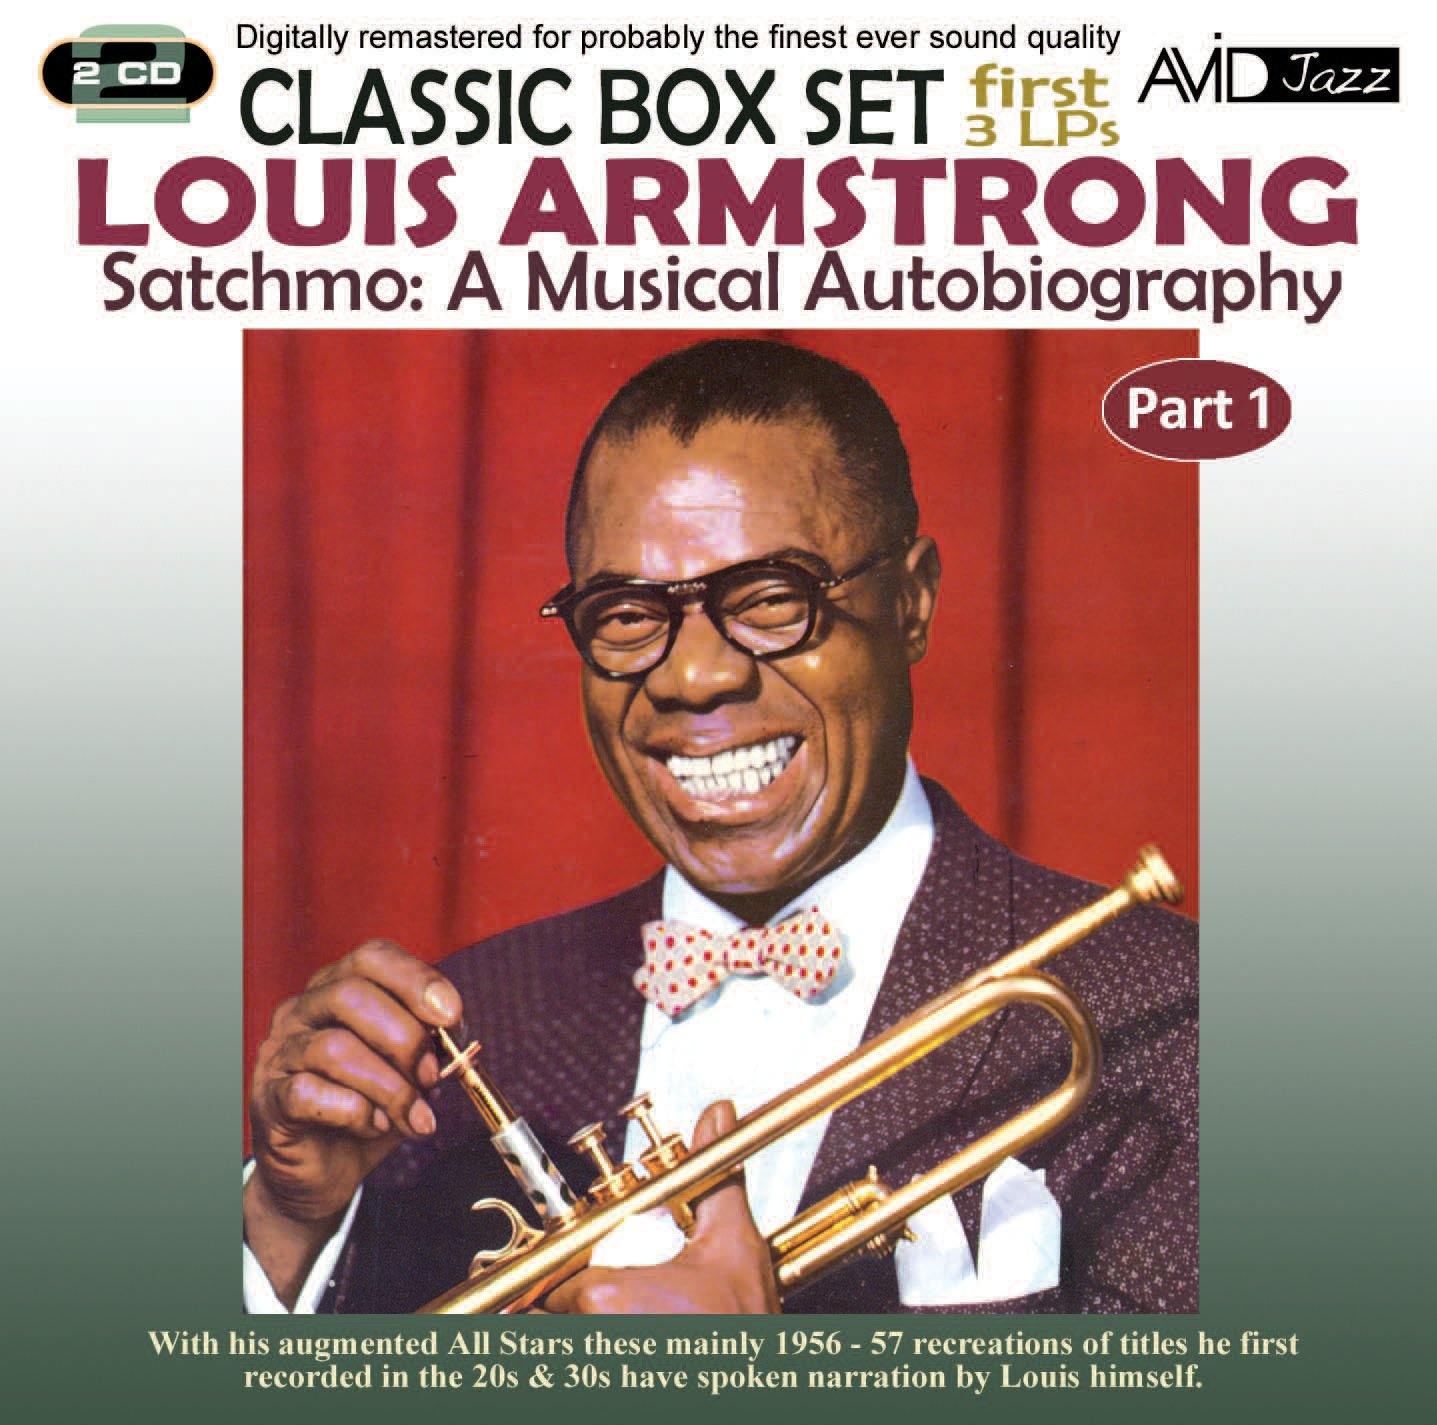 Louis Armstrong - Satchmo: A Musical Autobiography, Vol. 1 (2PC)